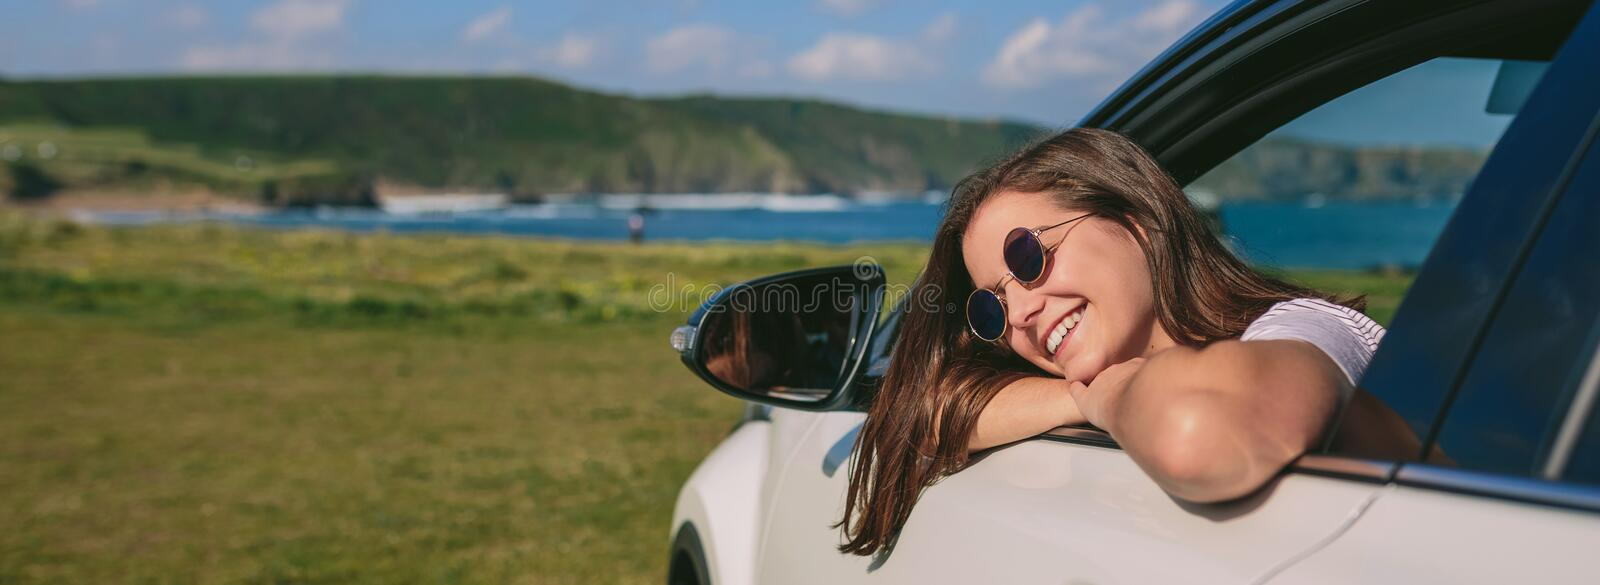 Girl leaning on window of the car royalty free stock photo